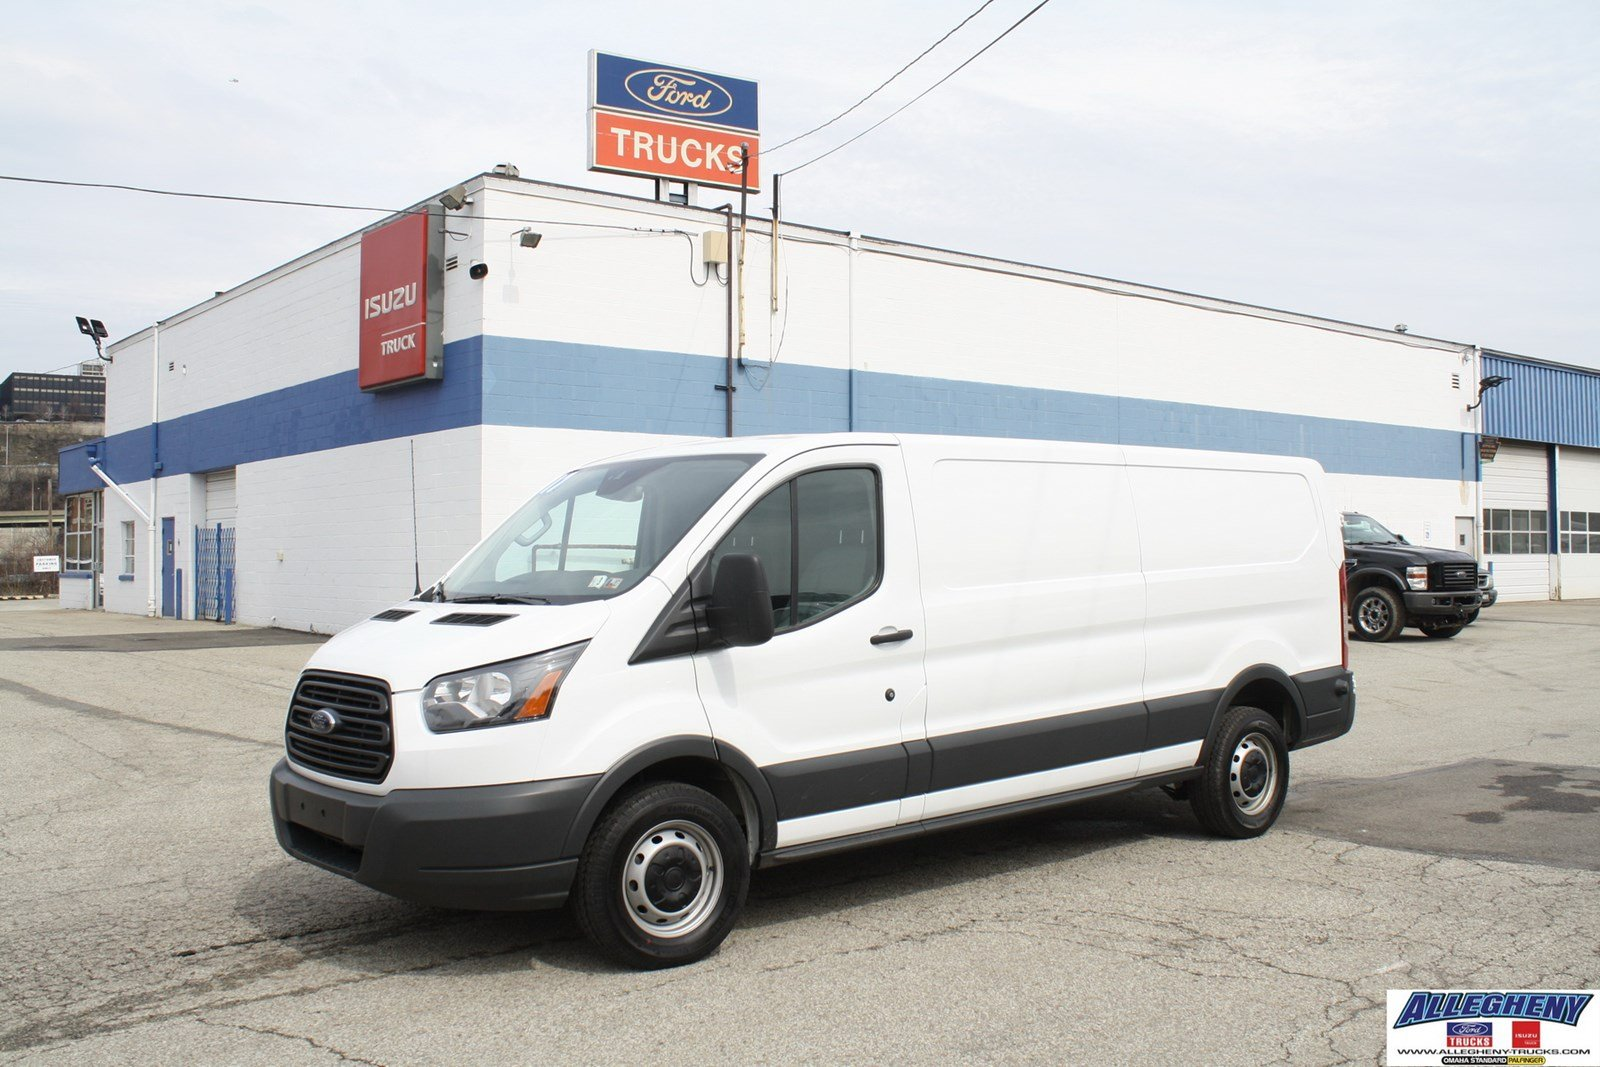 pre owned 2017 ford transit van t150 full size cargo van in pittsburgh 3720 allegheny ford. Black Bedroom Furniture Sets. Home Design Ideas